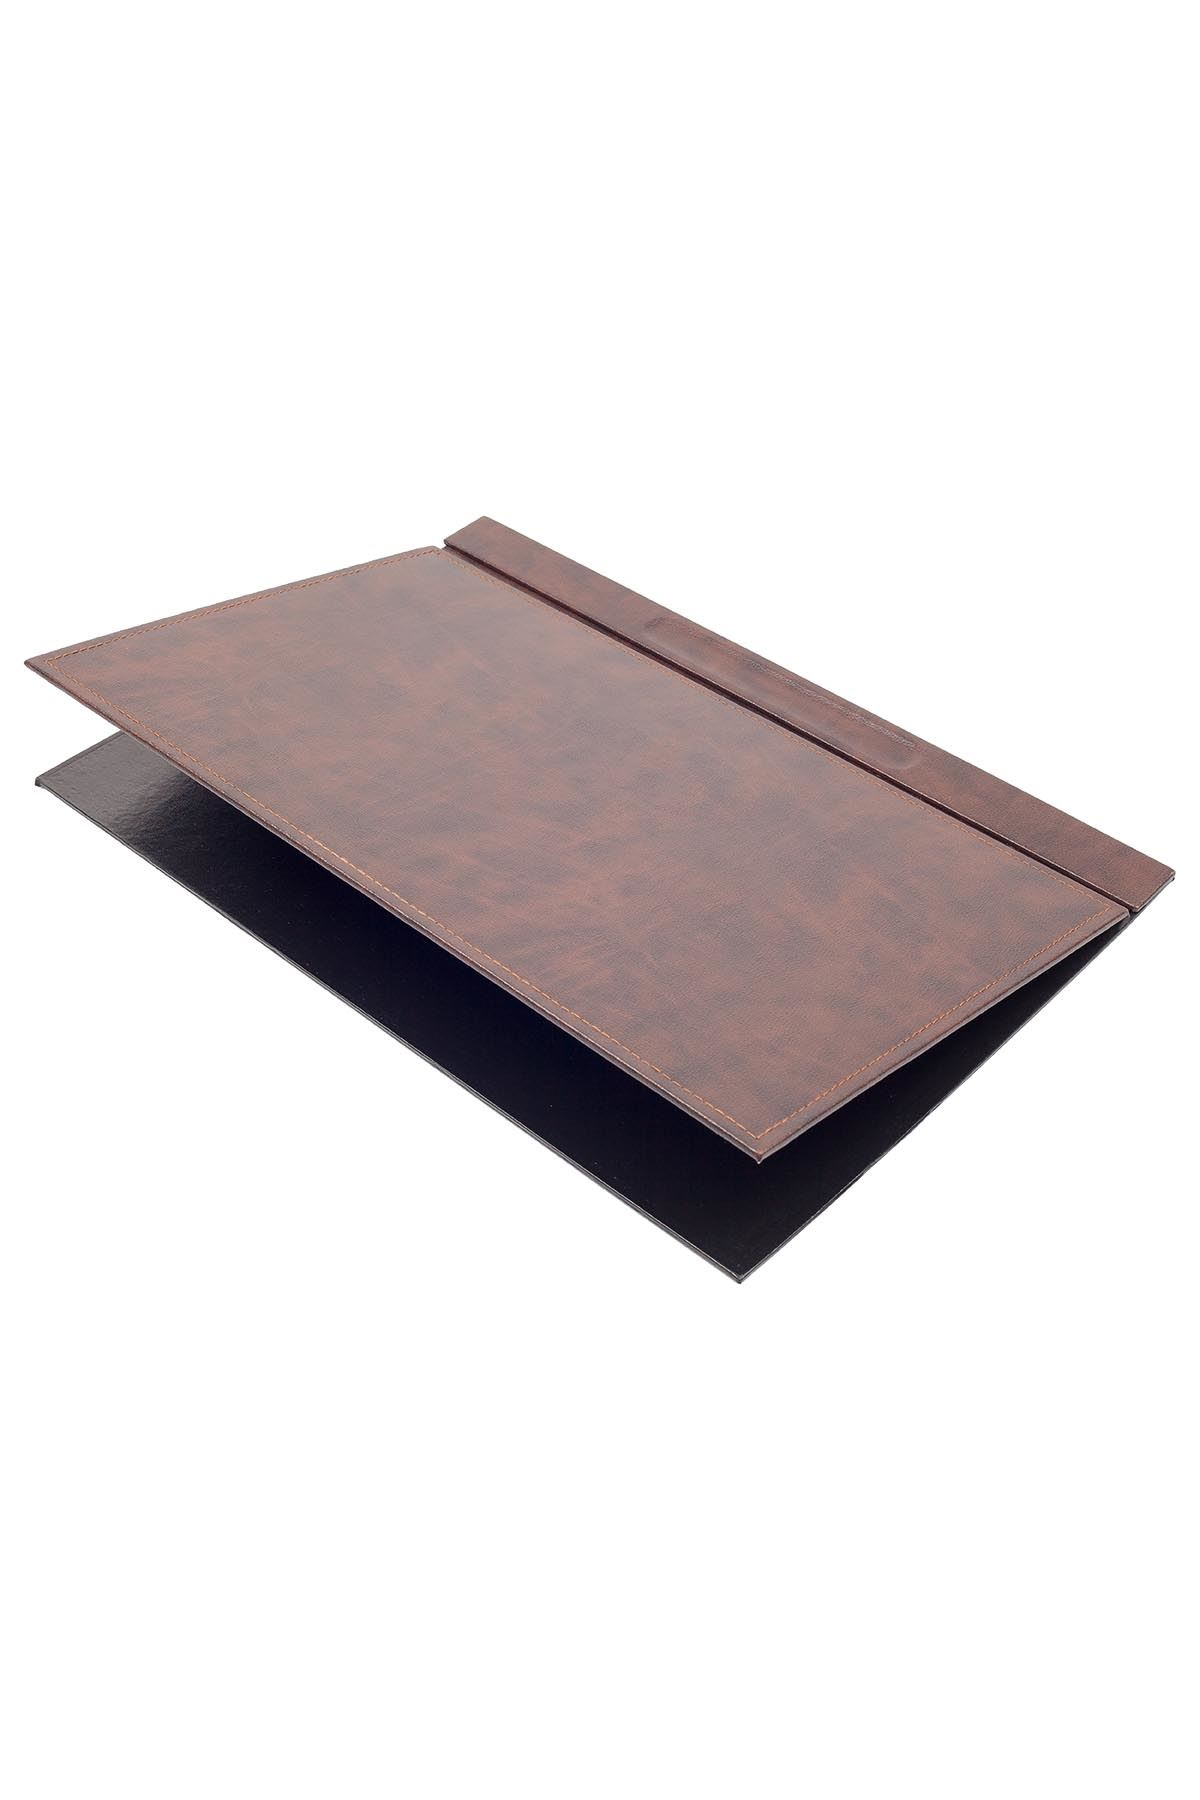 Luxury Leather Desk Set Brown 10 Accessories - Double Document Tray